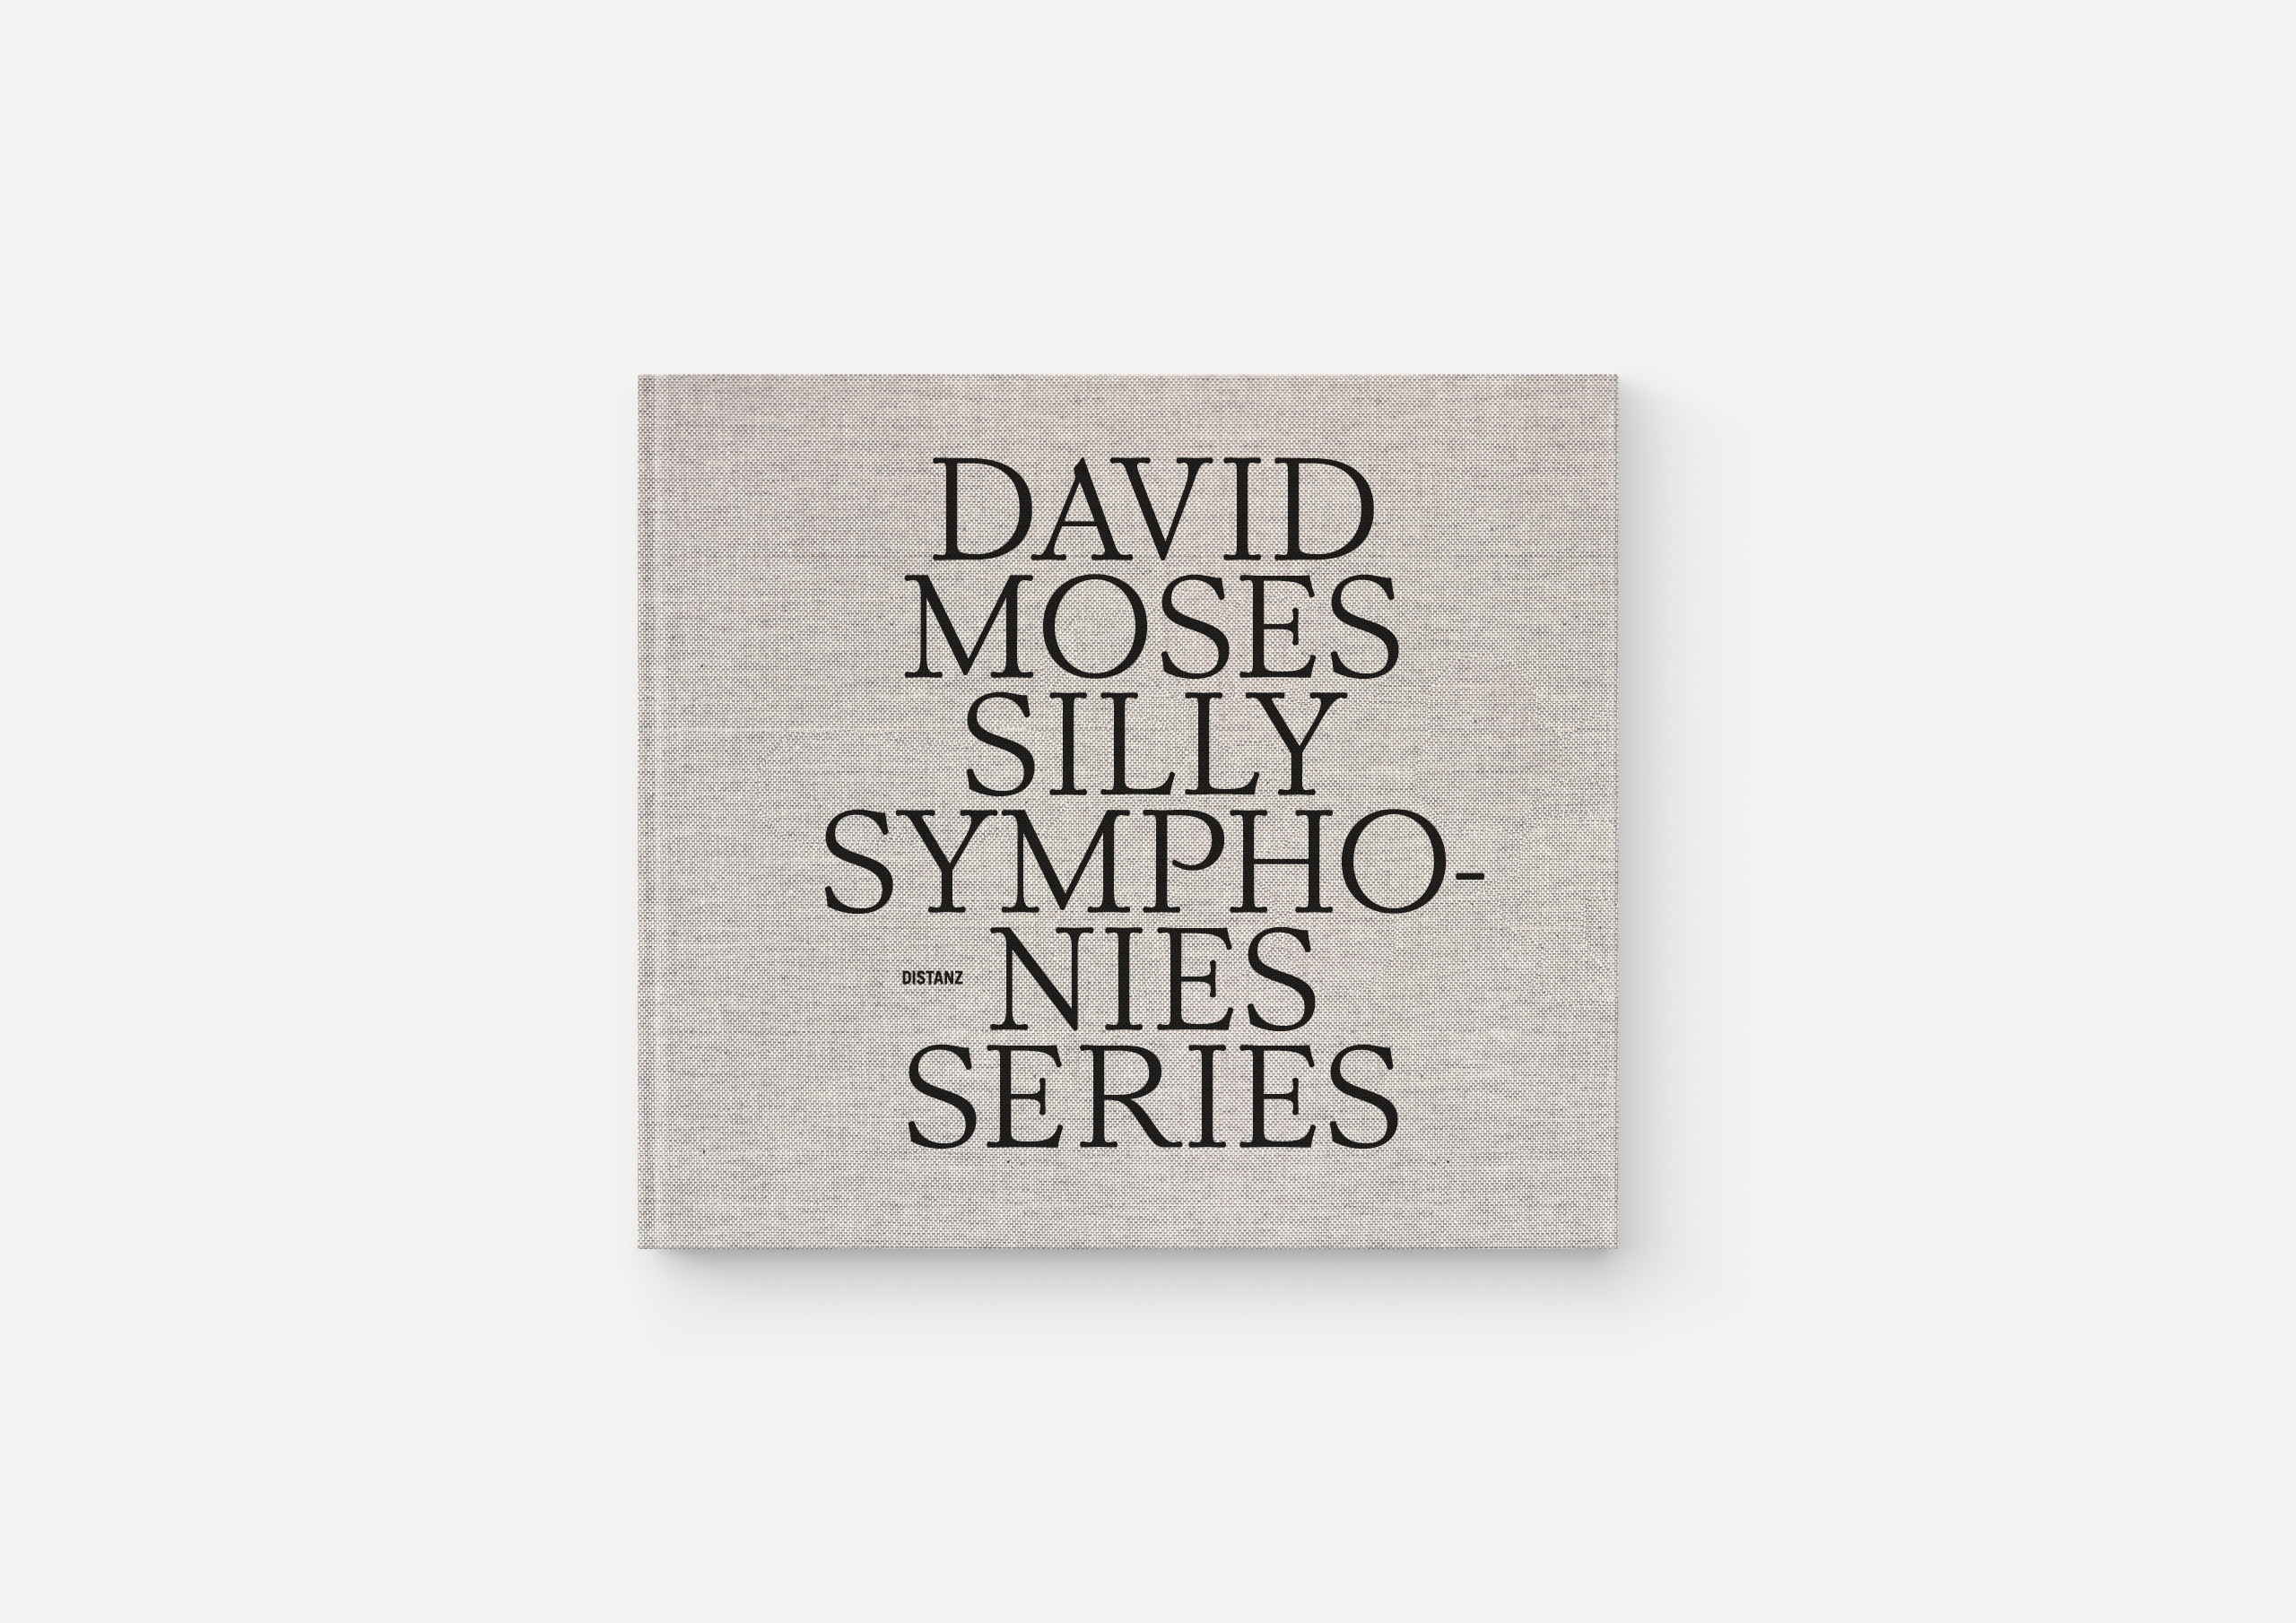 http://neuegestaltung.de/media/pages/clients/david-moses/29ddd3bead-1619427901/dm_silly_01_cover.jpg